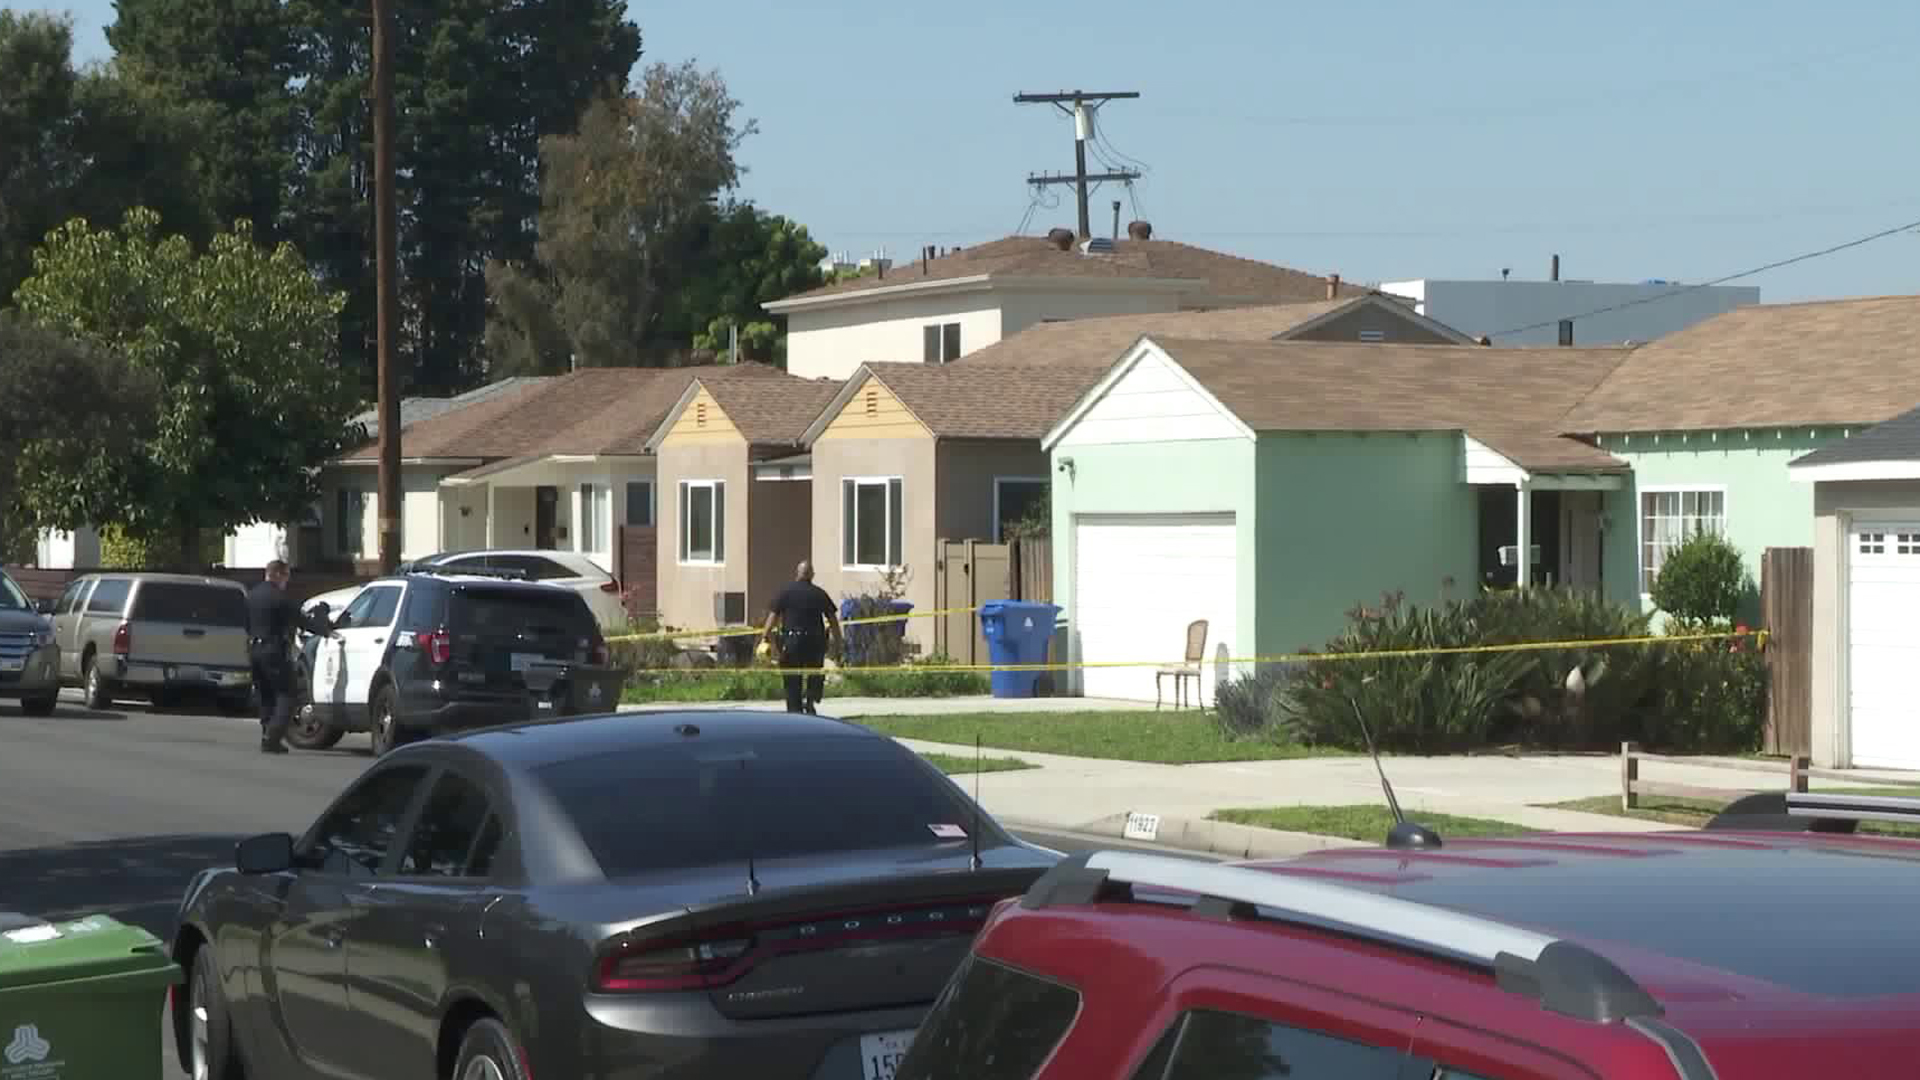 Police investigate at a home in Del Rey after a woman was found fatally burned in a bathtub. (Credit: KTLA)